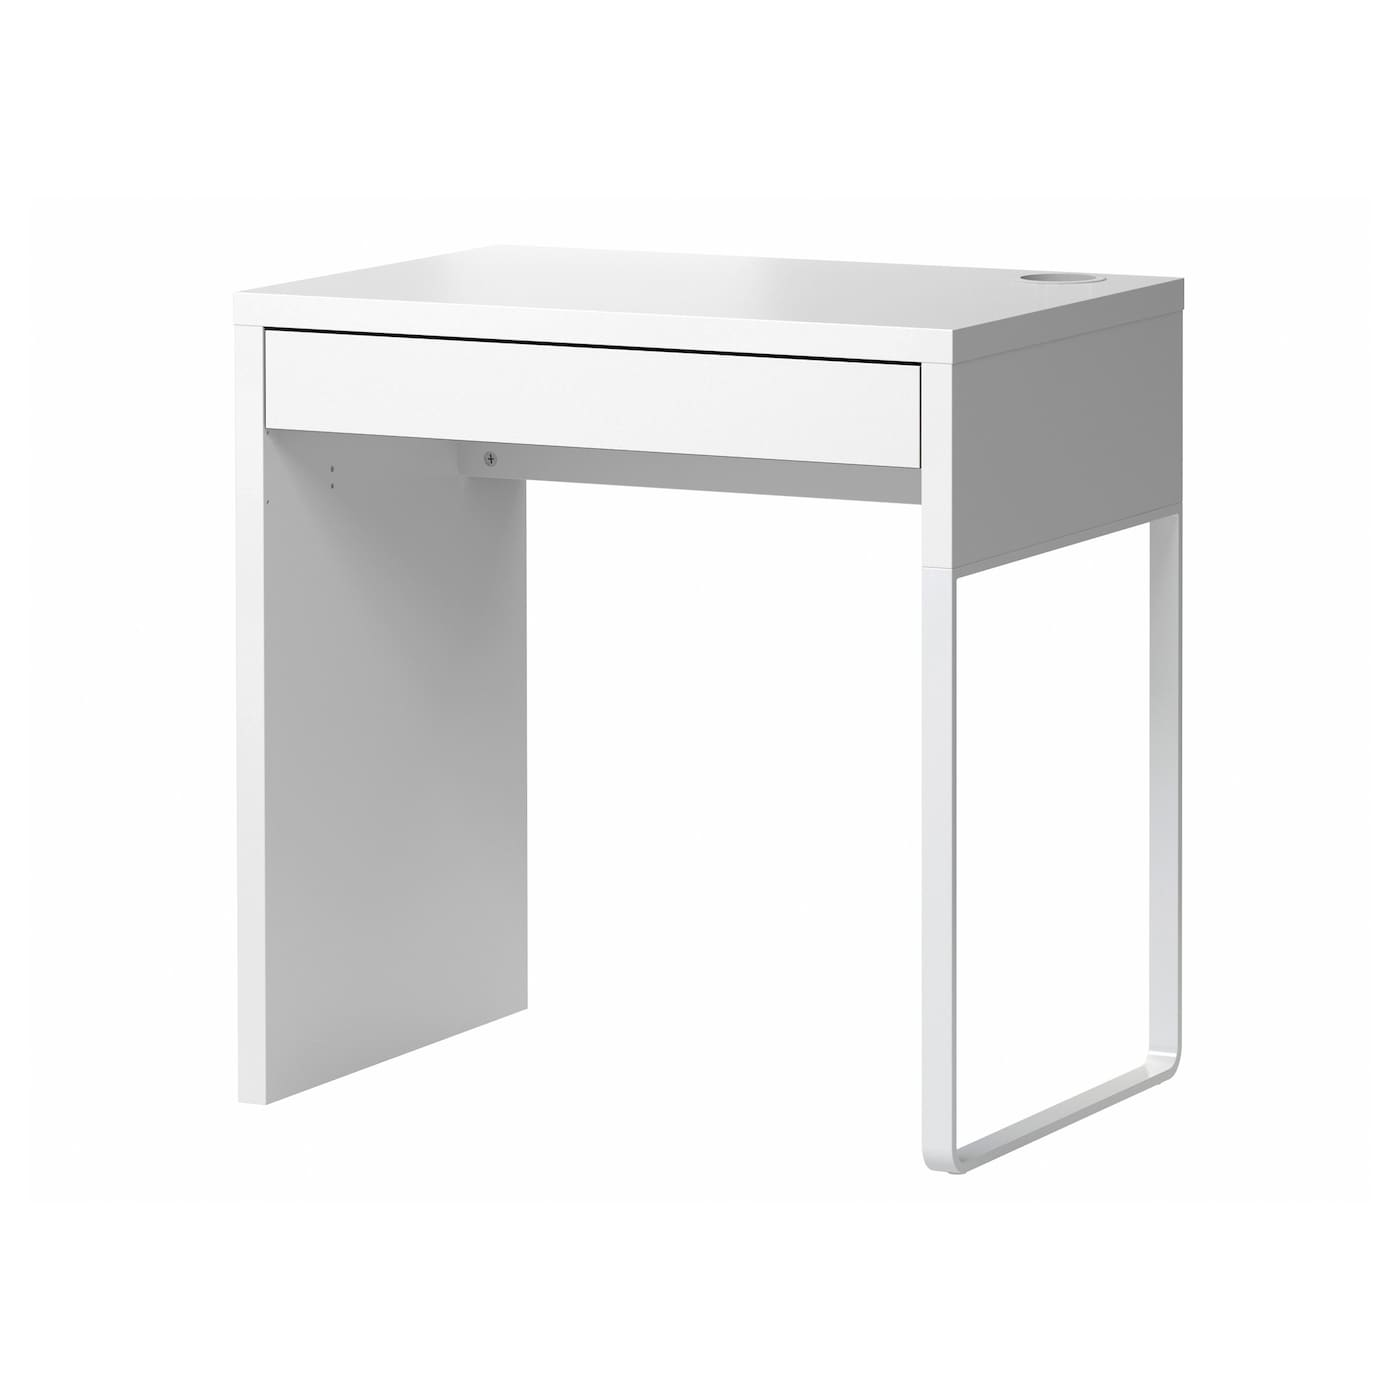 IKEA MICKE desk You can mount the legs to the right or left, according to your space or preference.